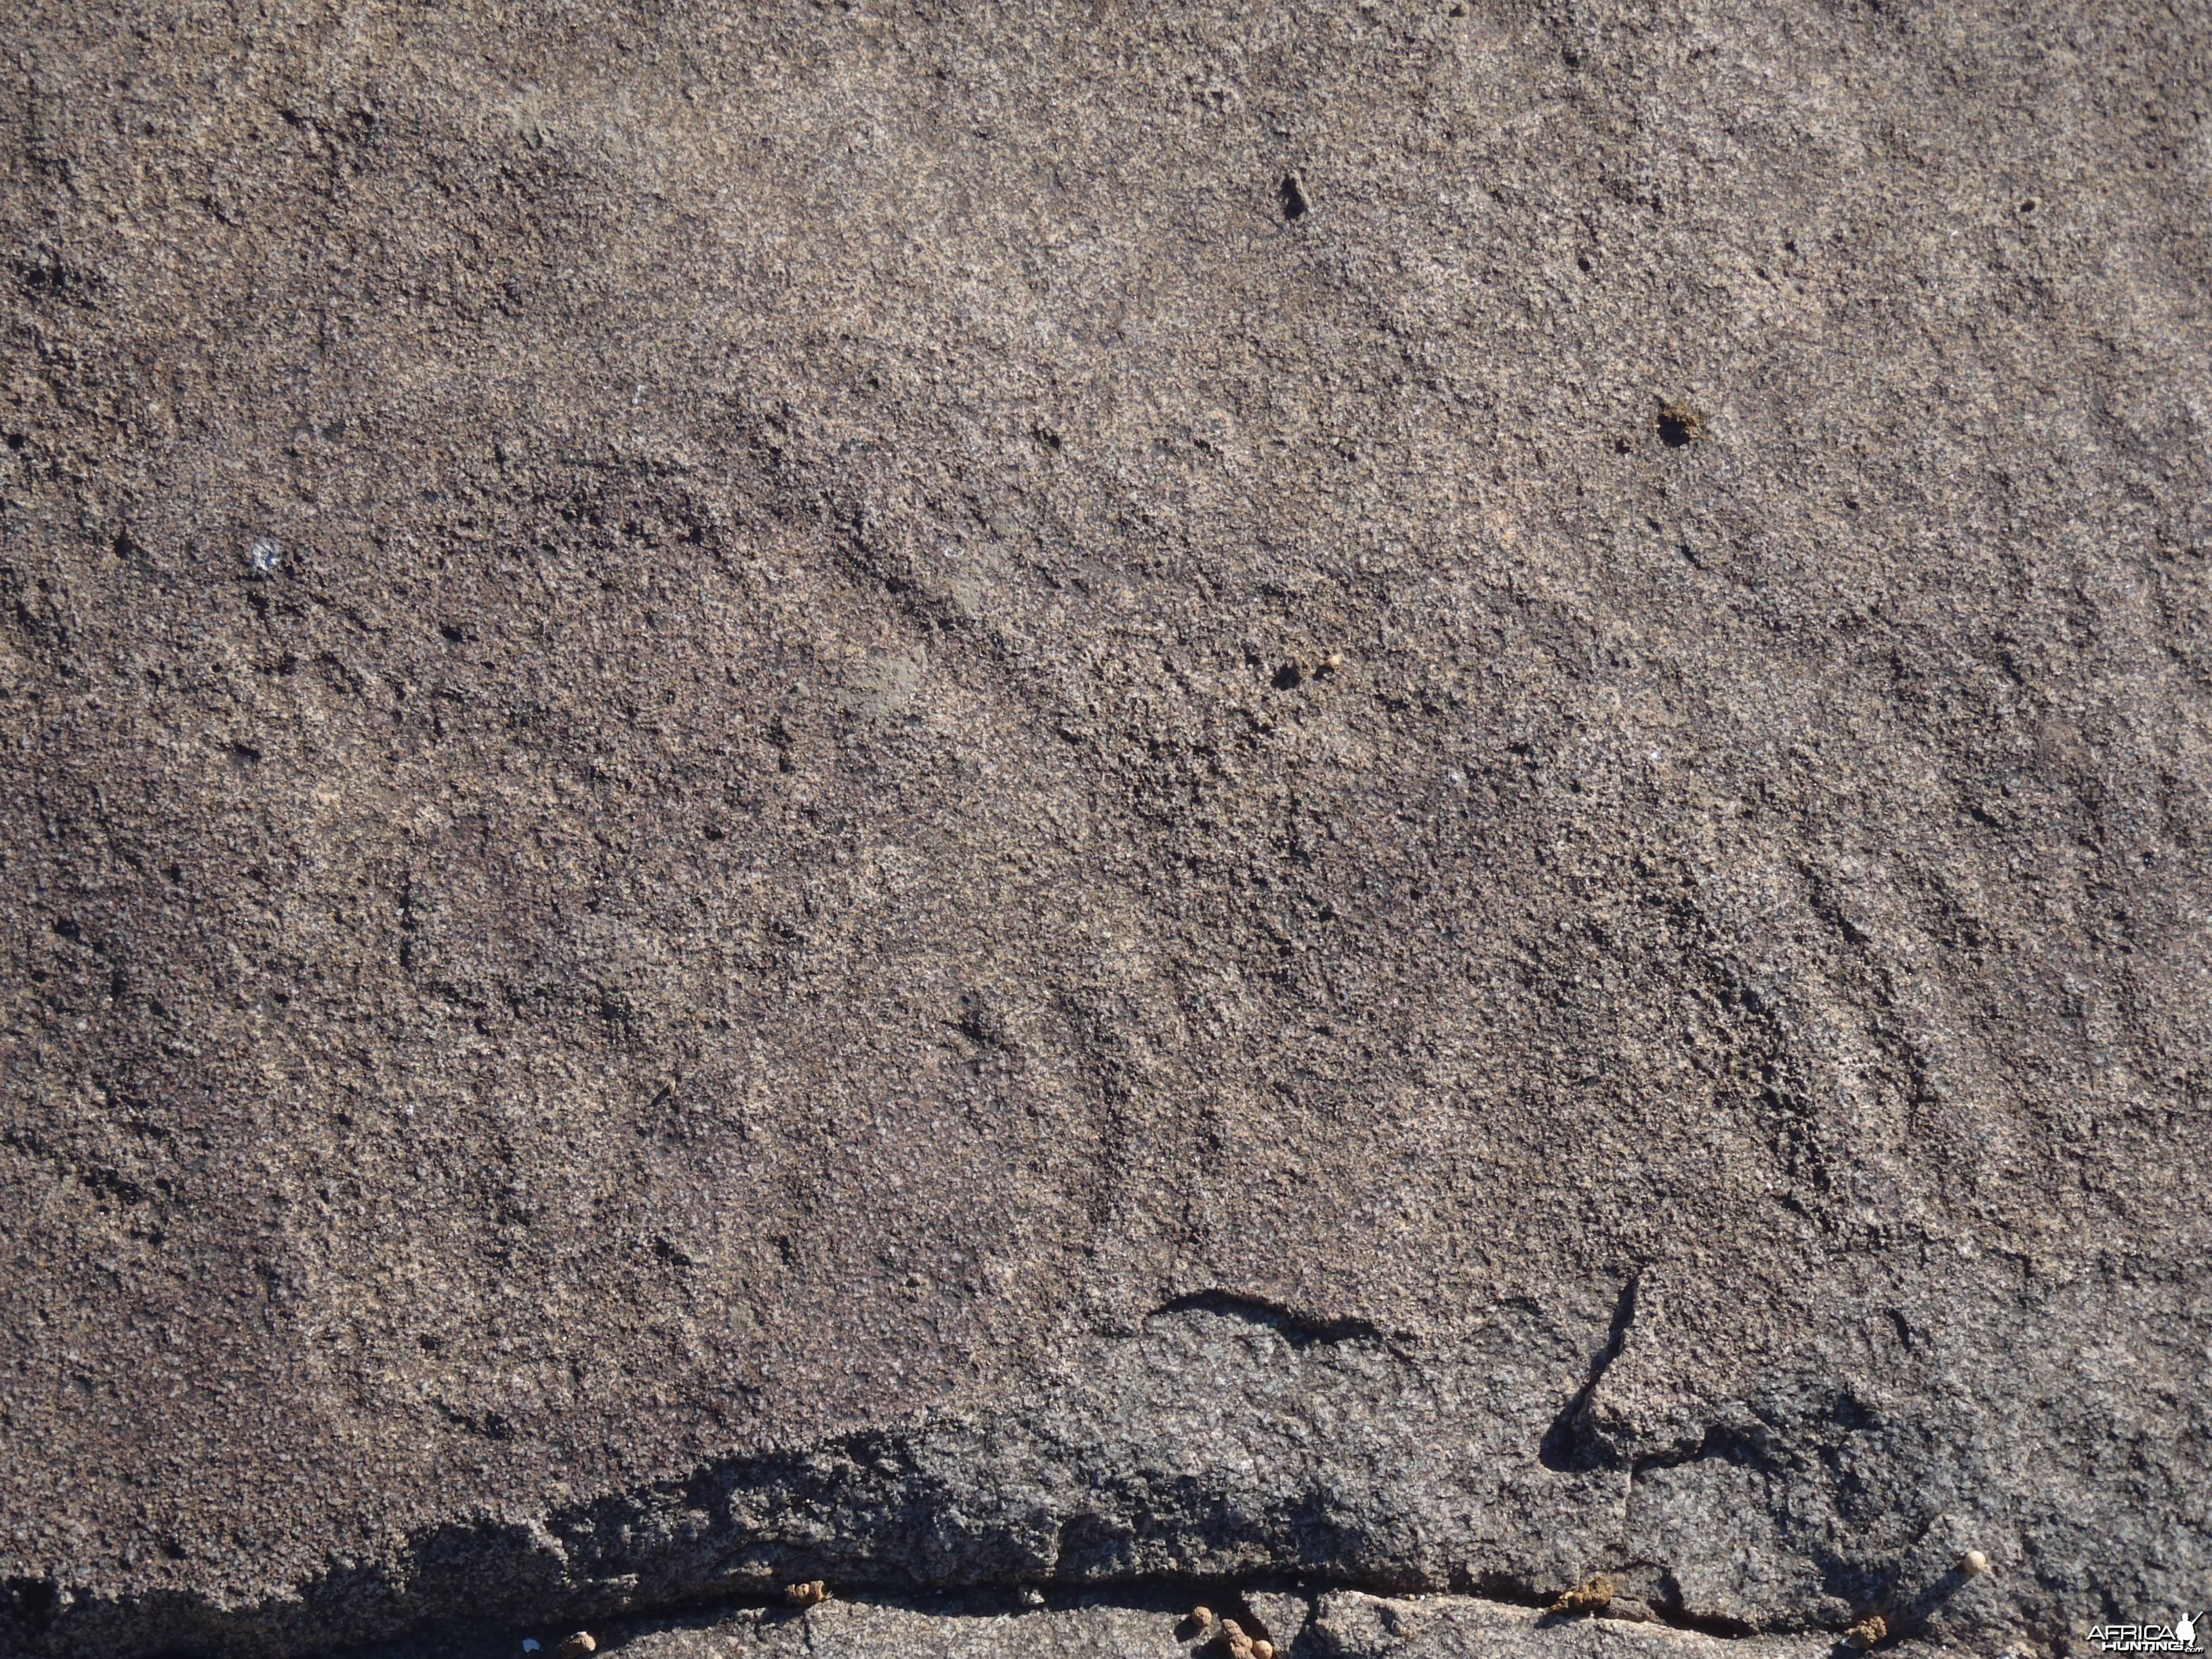 Bushman rock engraving of Giraffe in Namibia